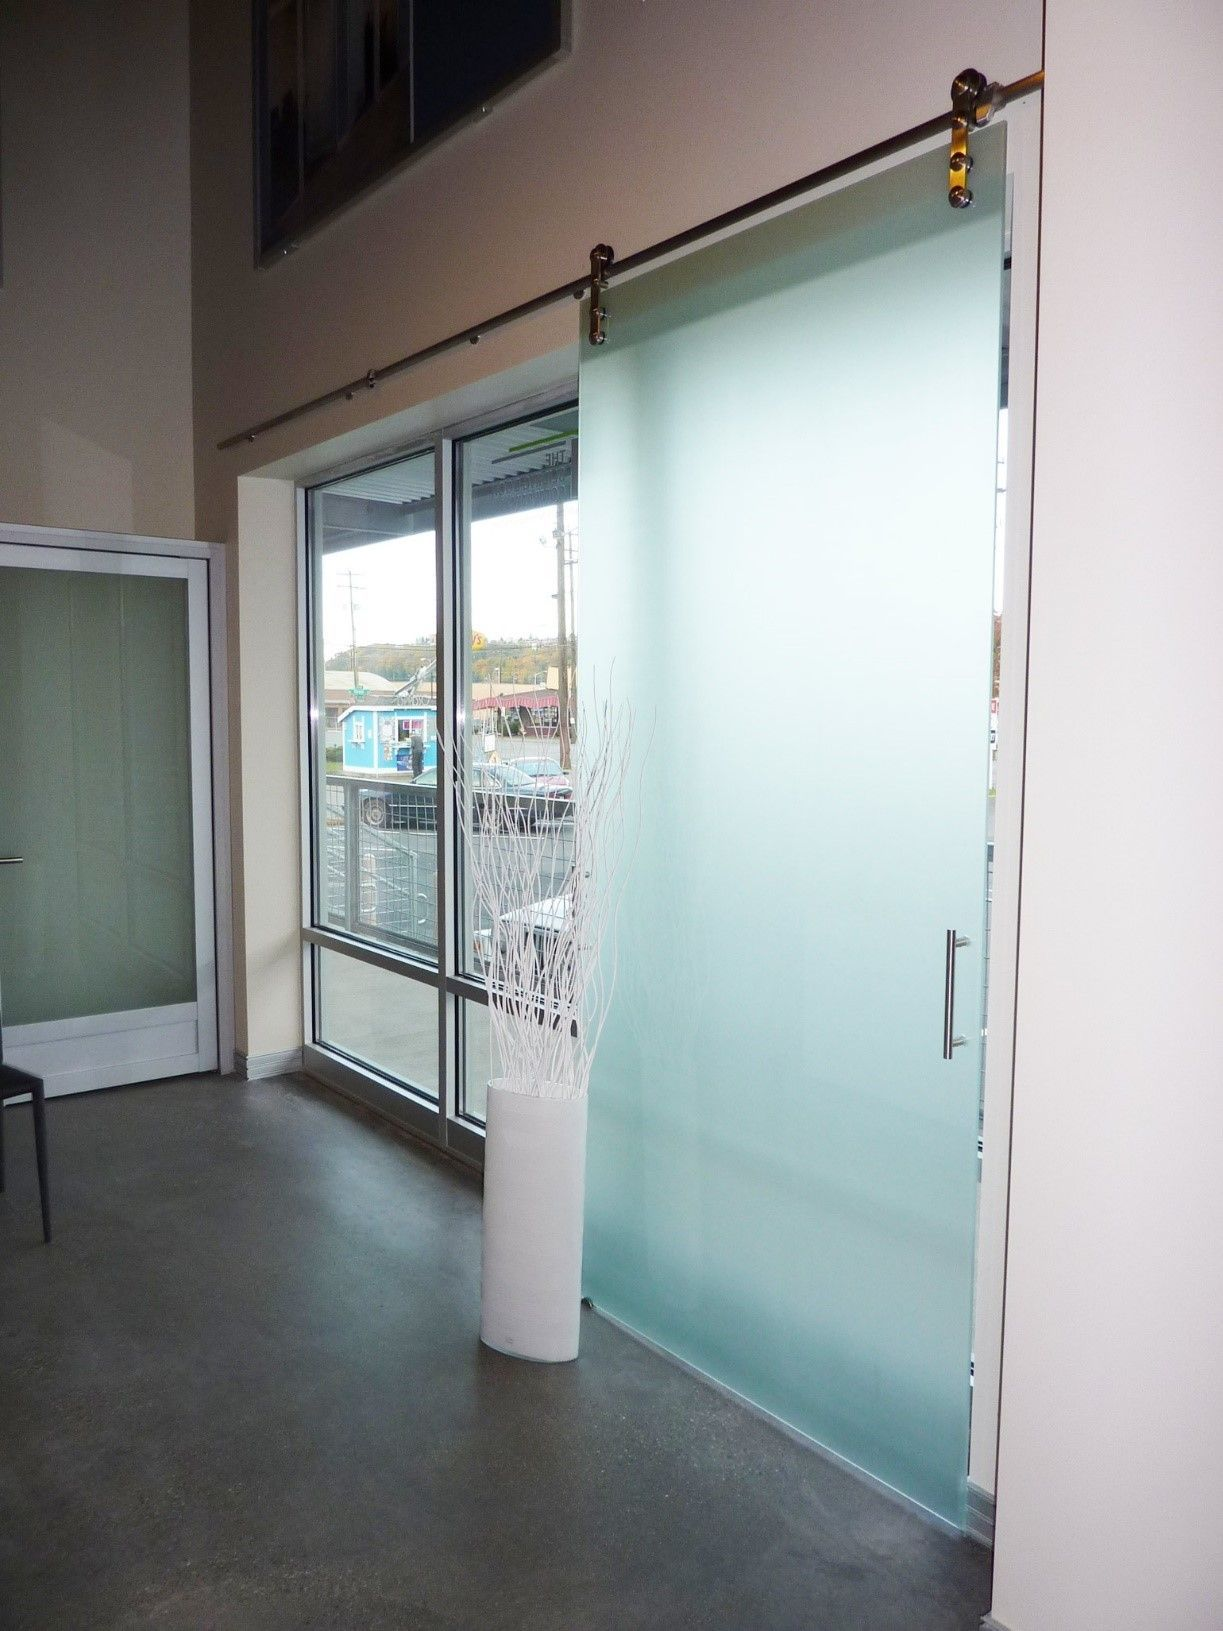 products office glass frameless doors with barn barns the sliding door for